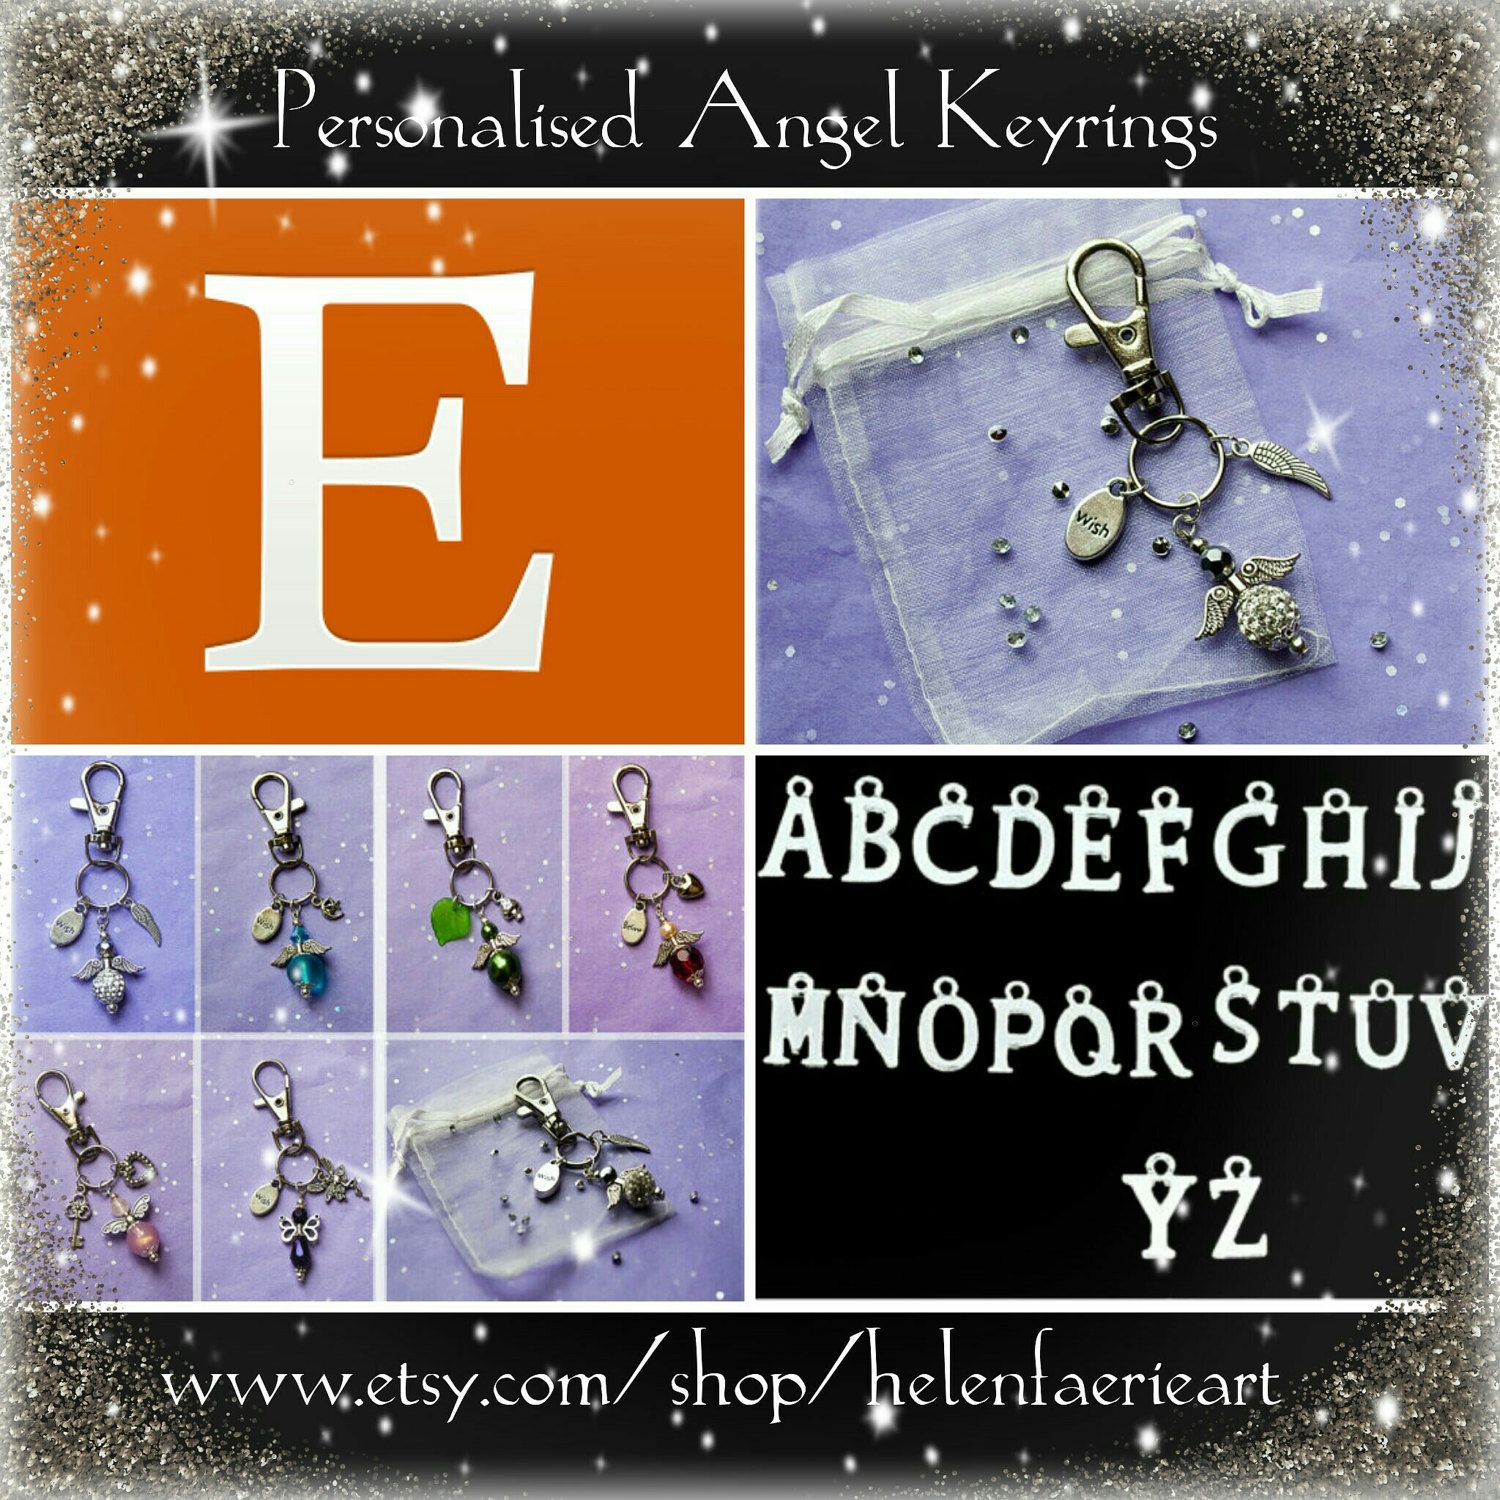 Personalise these little angel keyrings with your friends or loved ones initial x